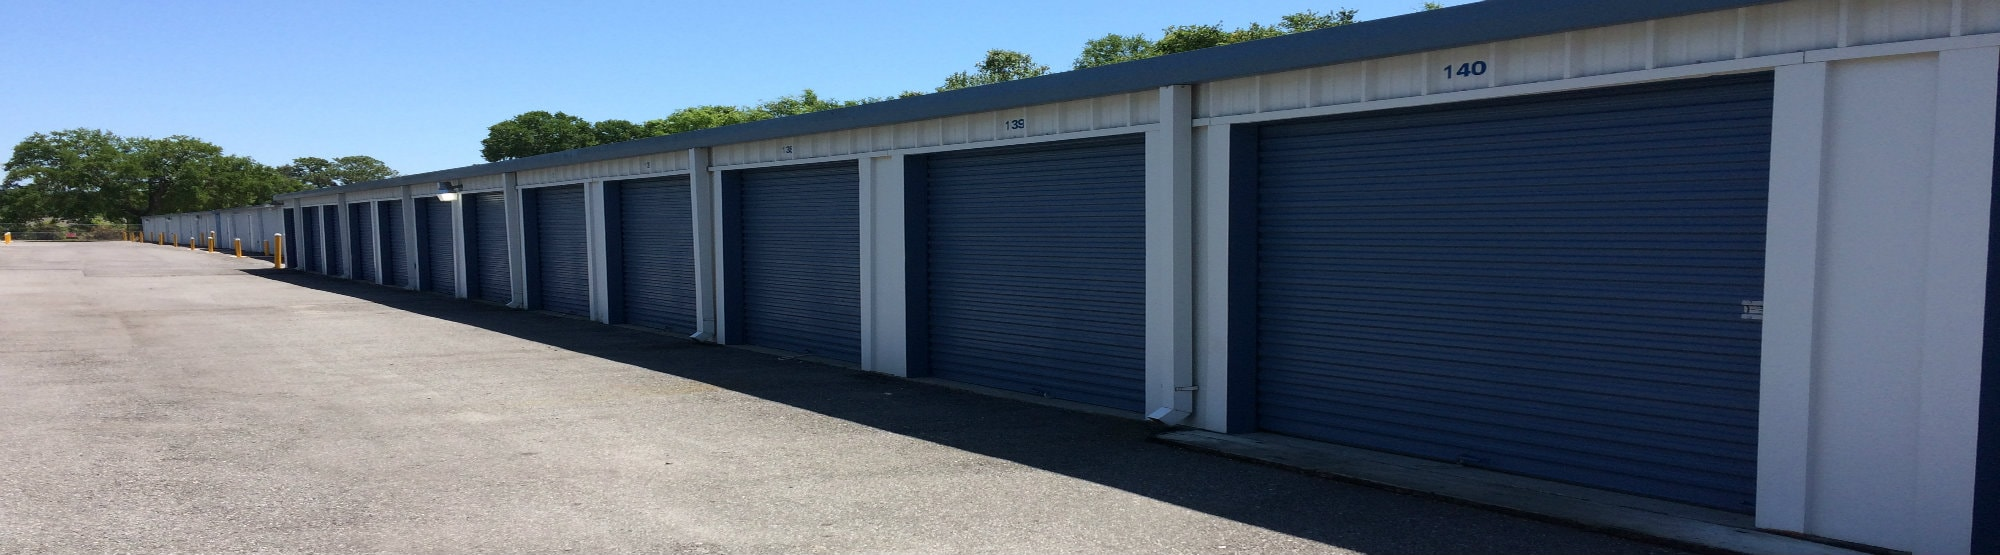 Great Service Great Prices! University Storage offers climate controlled storage units ... & Pensacola FL Storage Units | University Storage